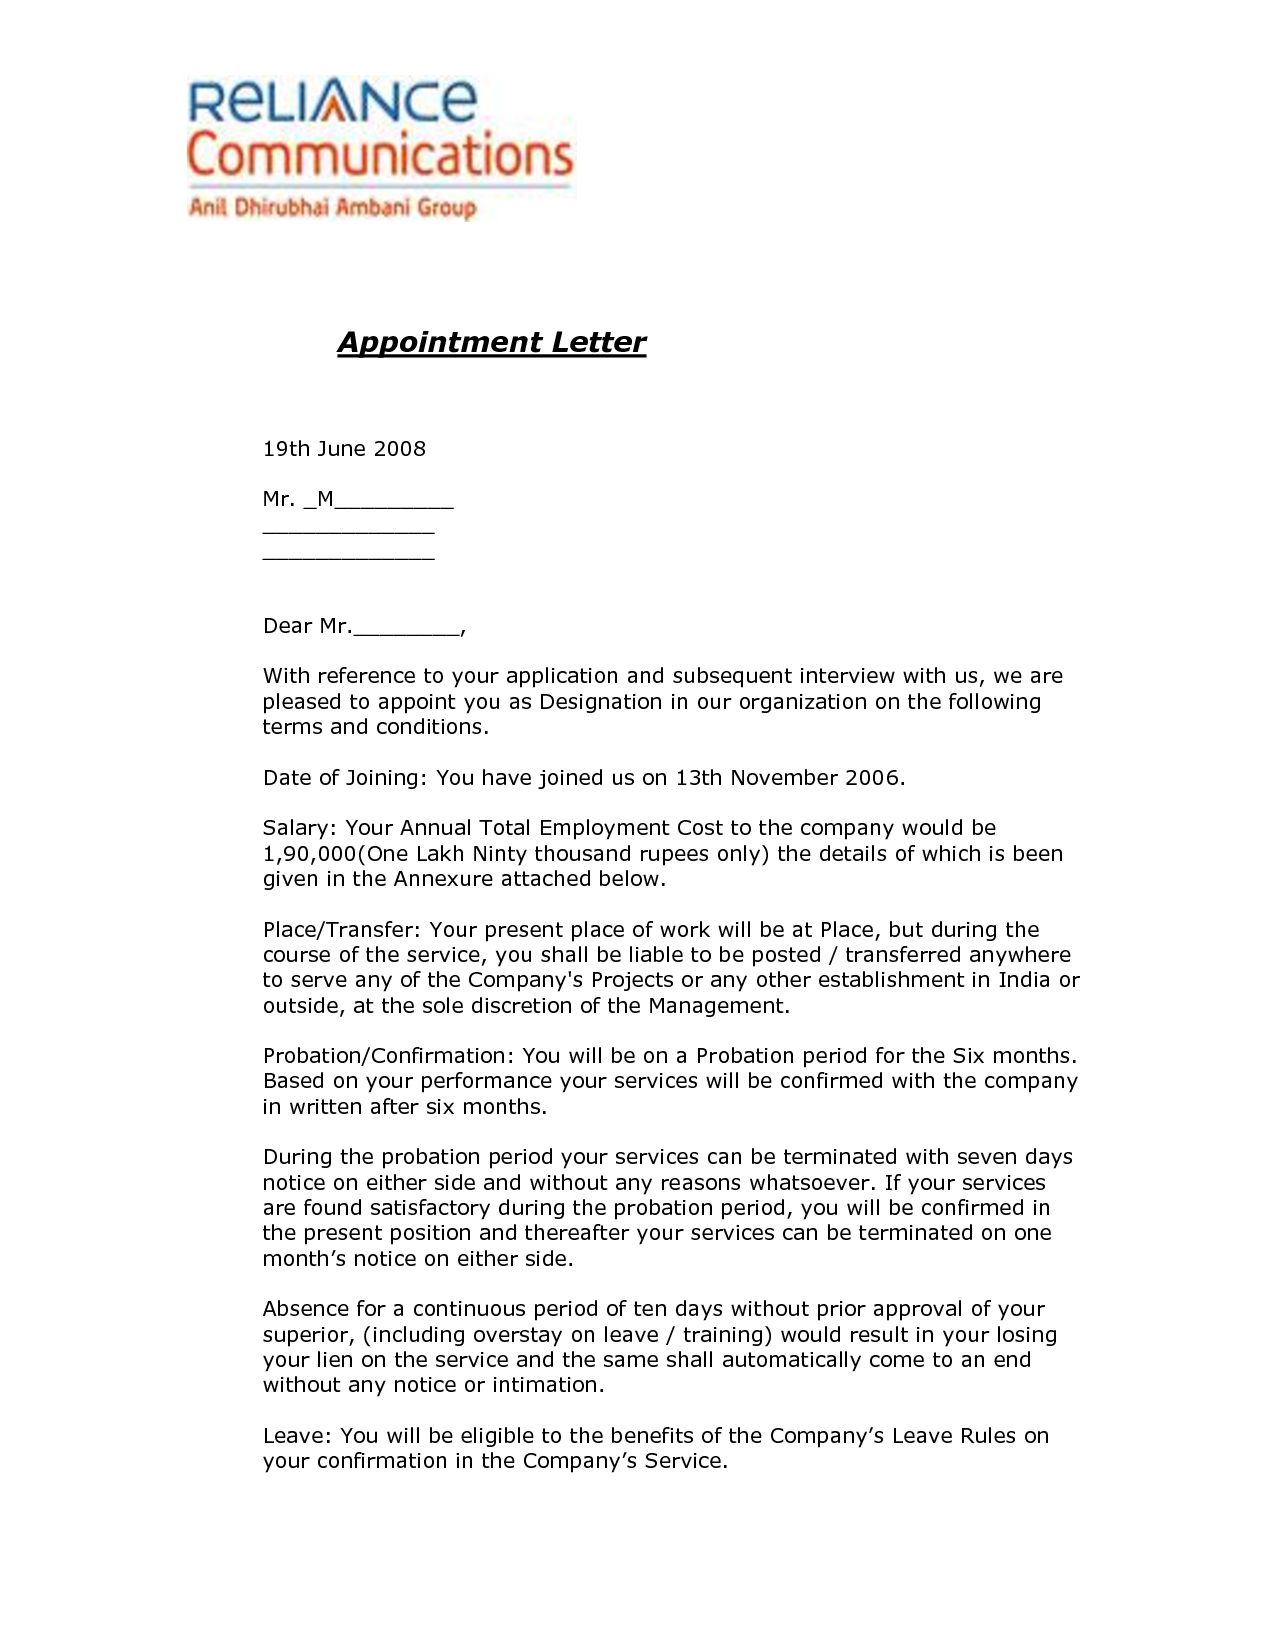 Joining letter format for offer letter format legal joining letter format for offer legal documents appointment page best free home design idea inspiration spiritdancerdesigns Gallery